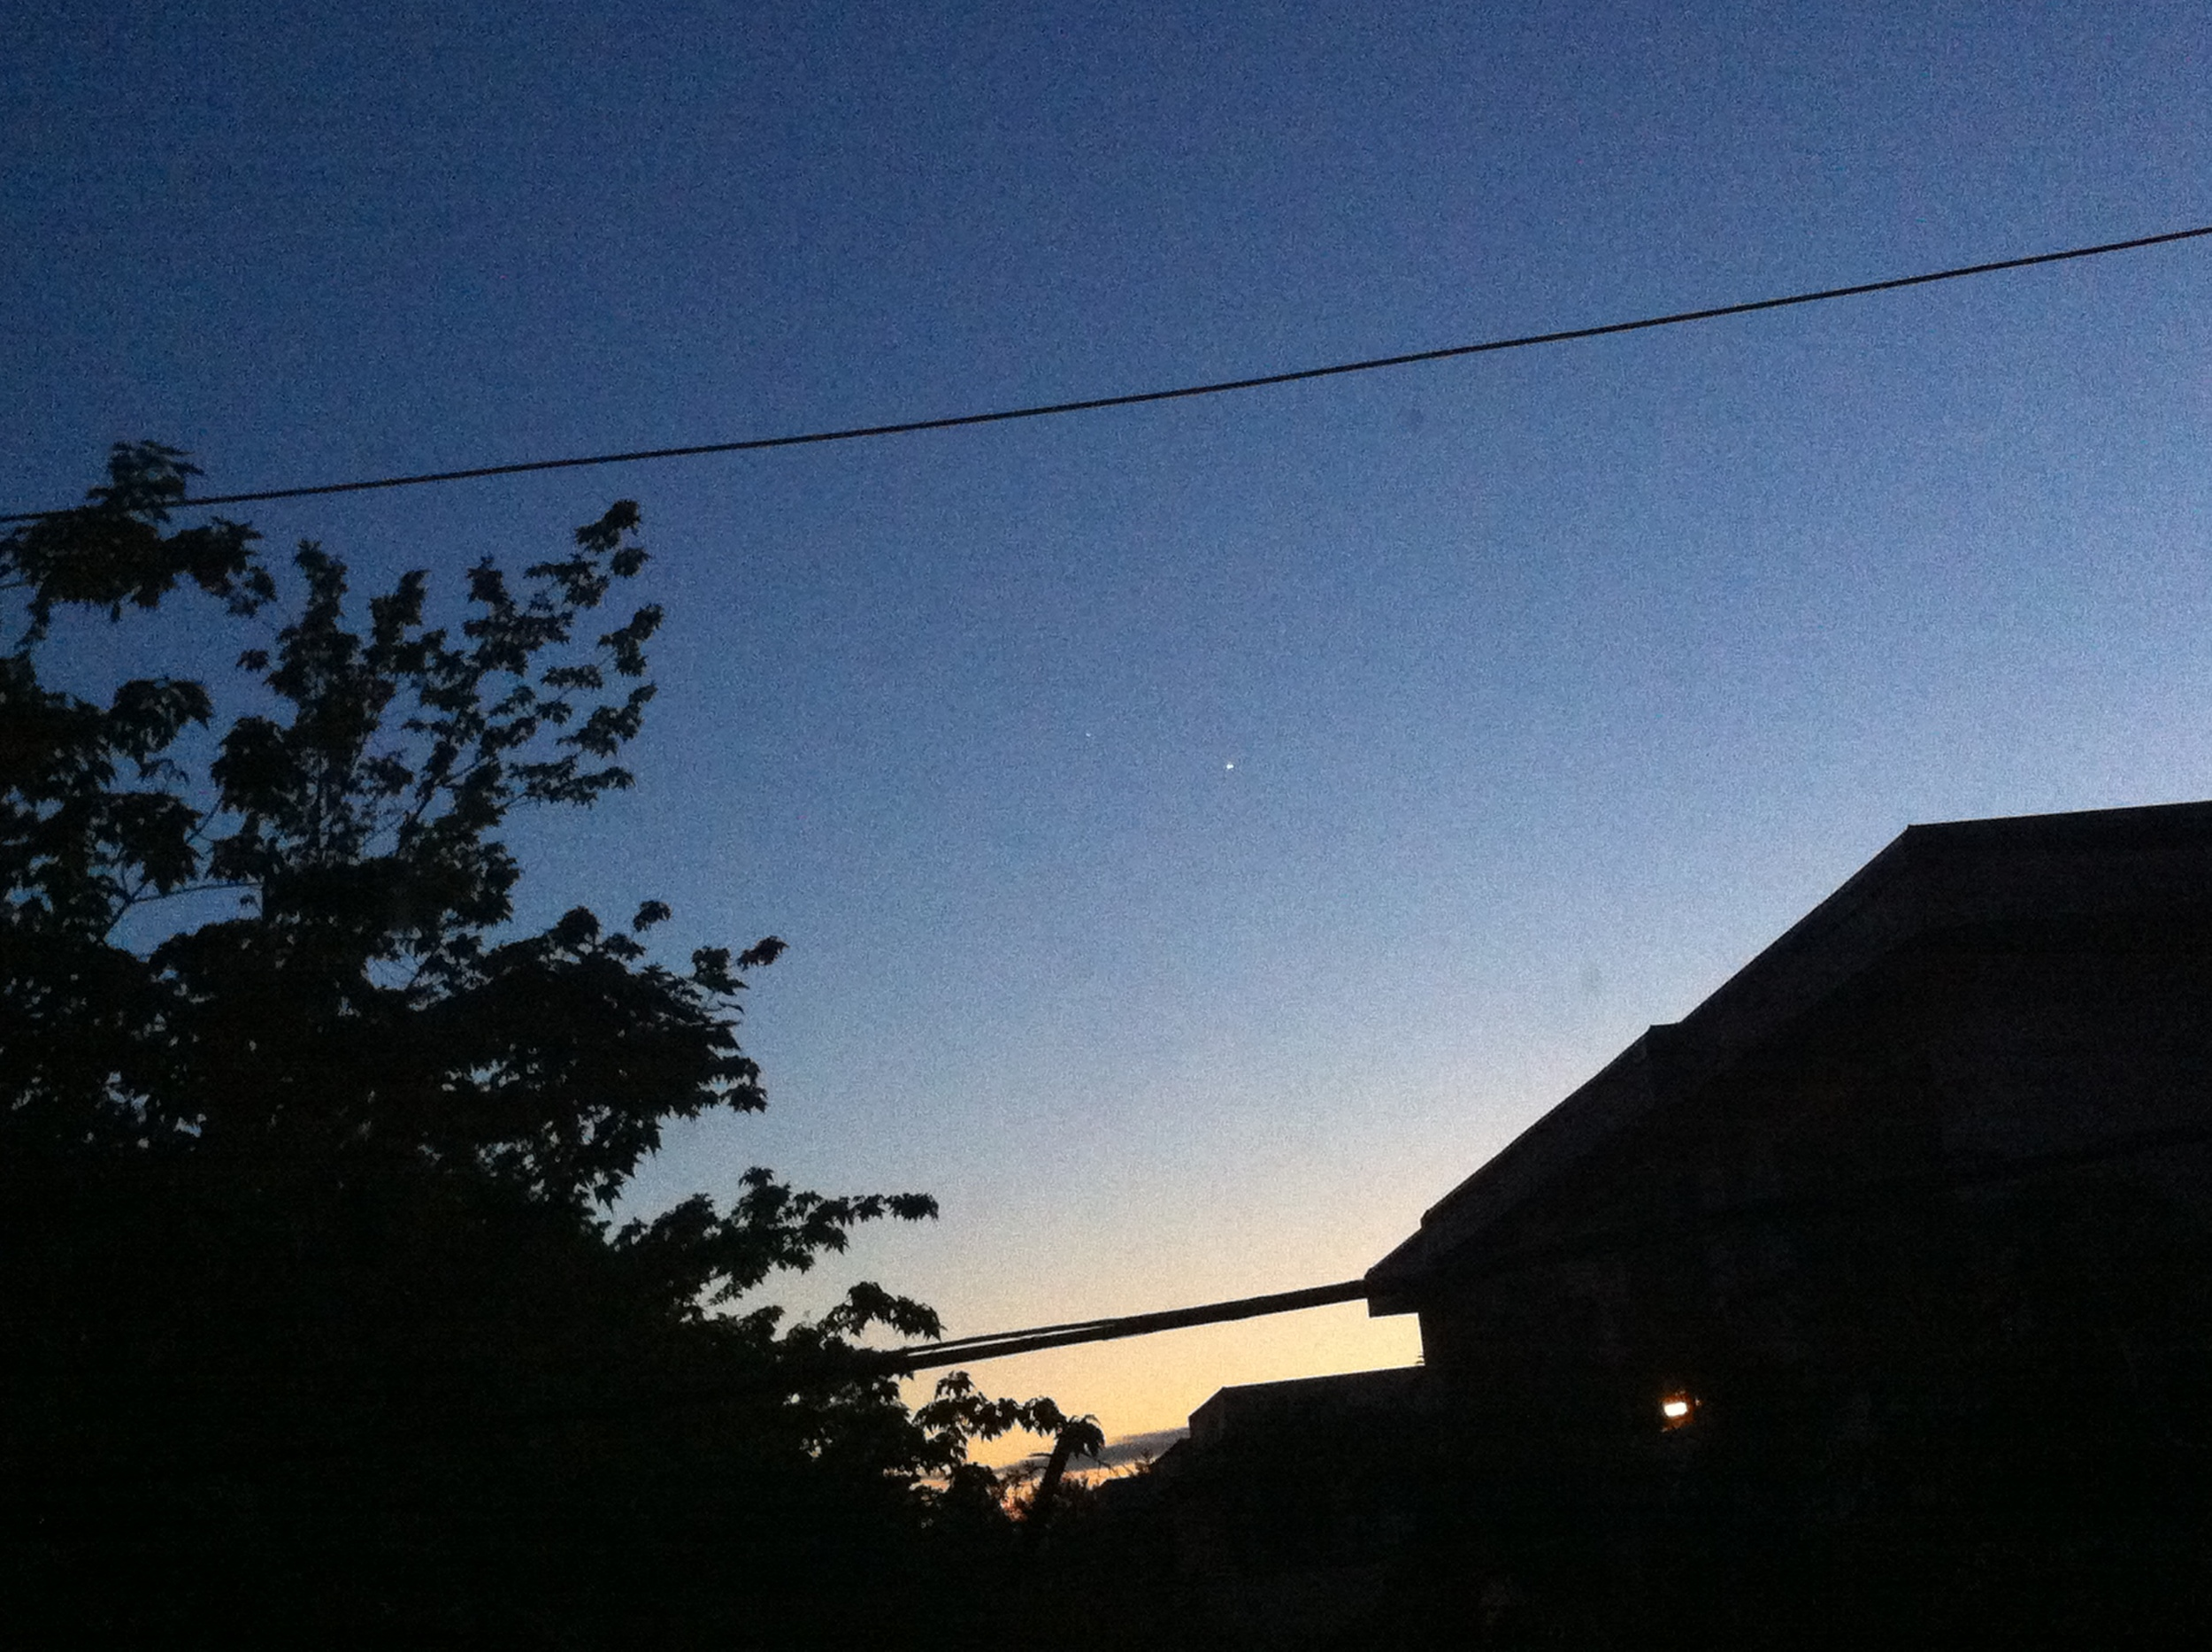 Venus and Jupiter  (can you see them?). Venus is the brighter one, Jupiter is barely visible, to the left of Venus.